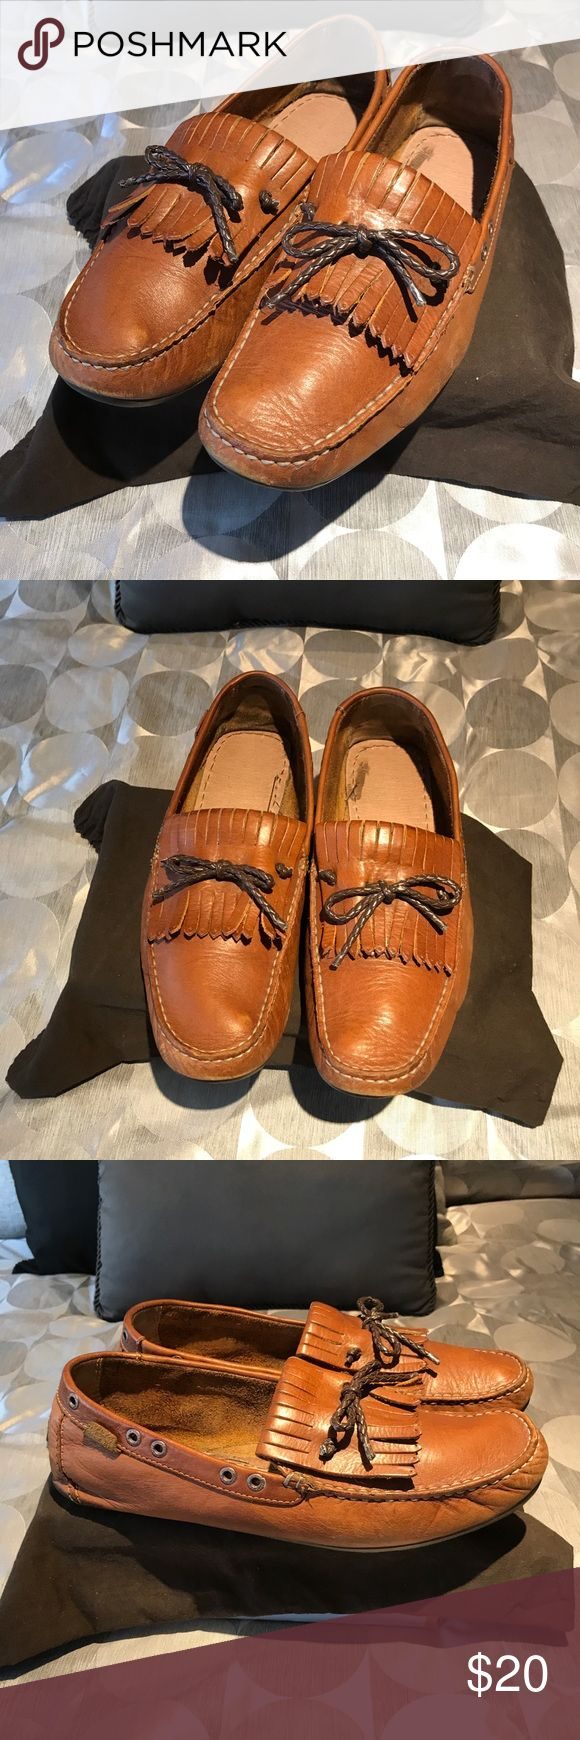 Sperrys loafer Very nice sperry's loafer Shoes just need a little love and new insole what you see is what it is Sperry Top-Sider Shoes Loafers & Slip-Ons